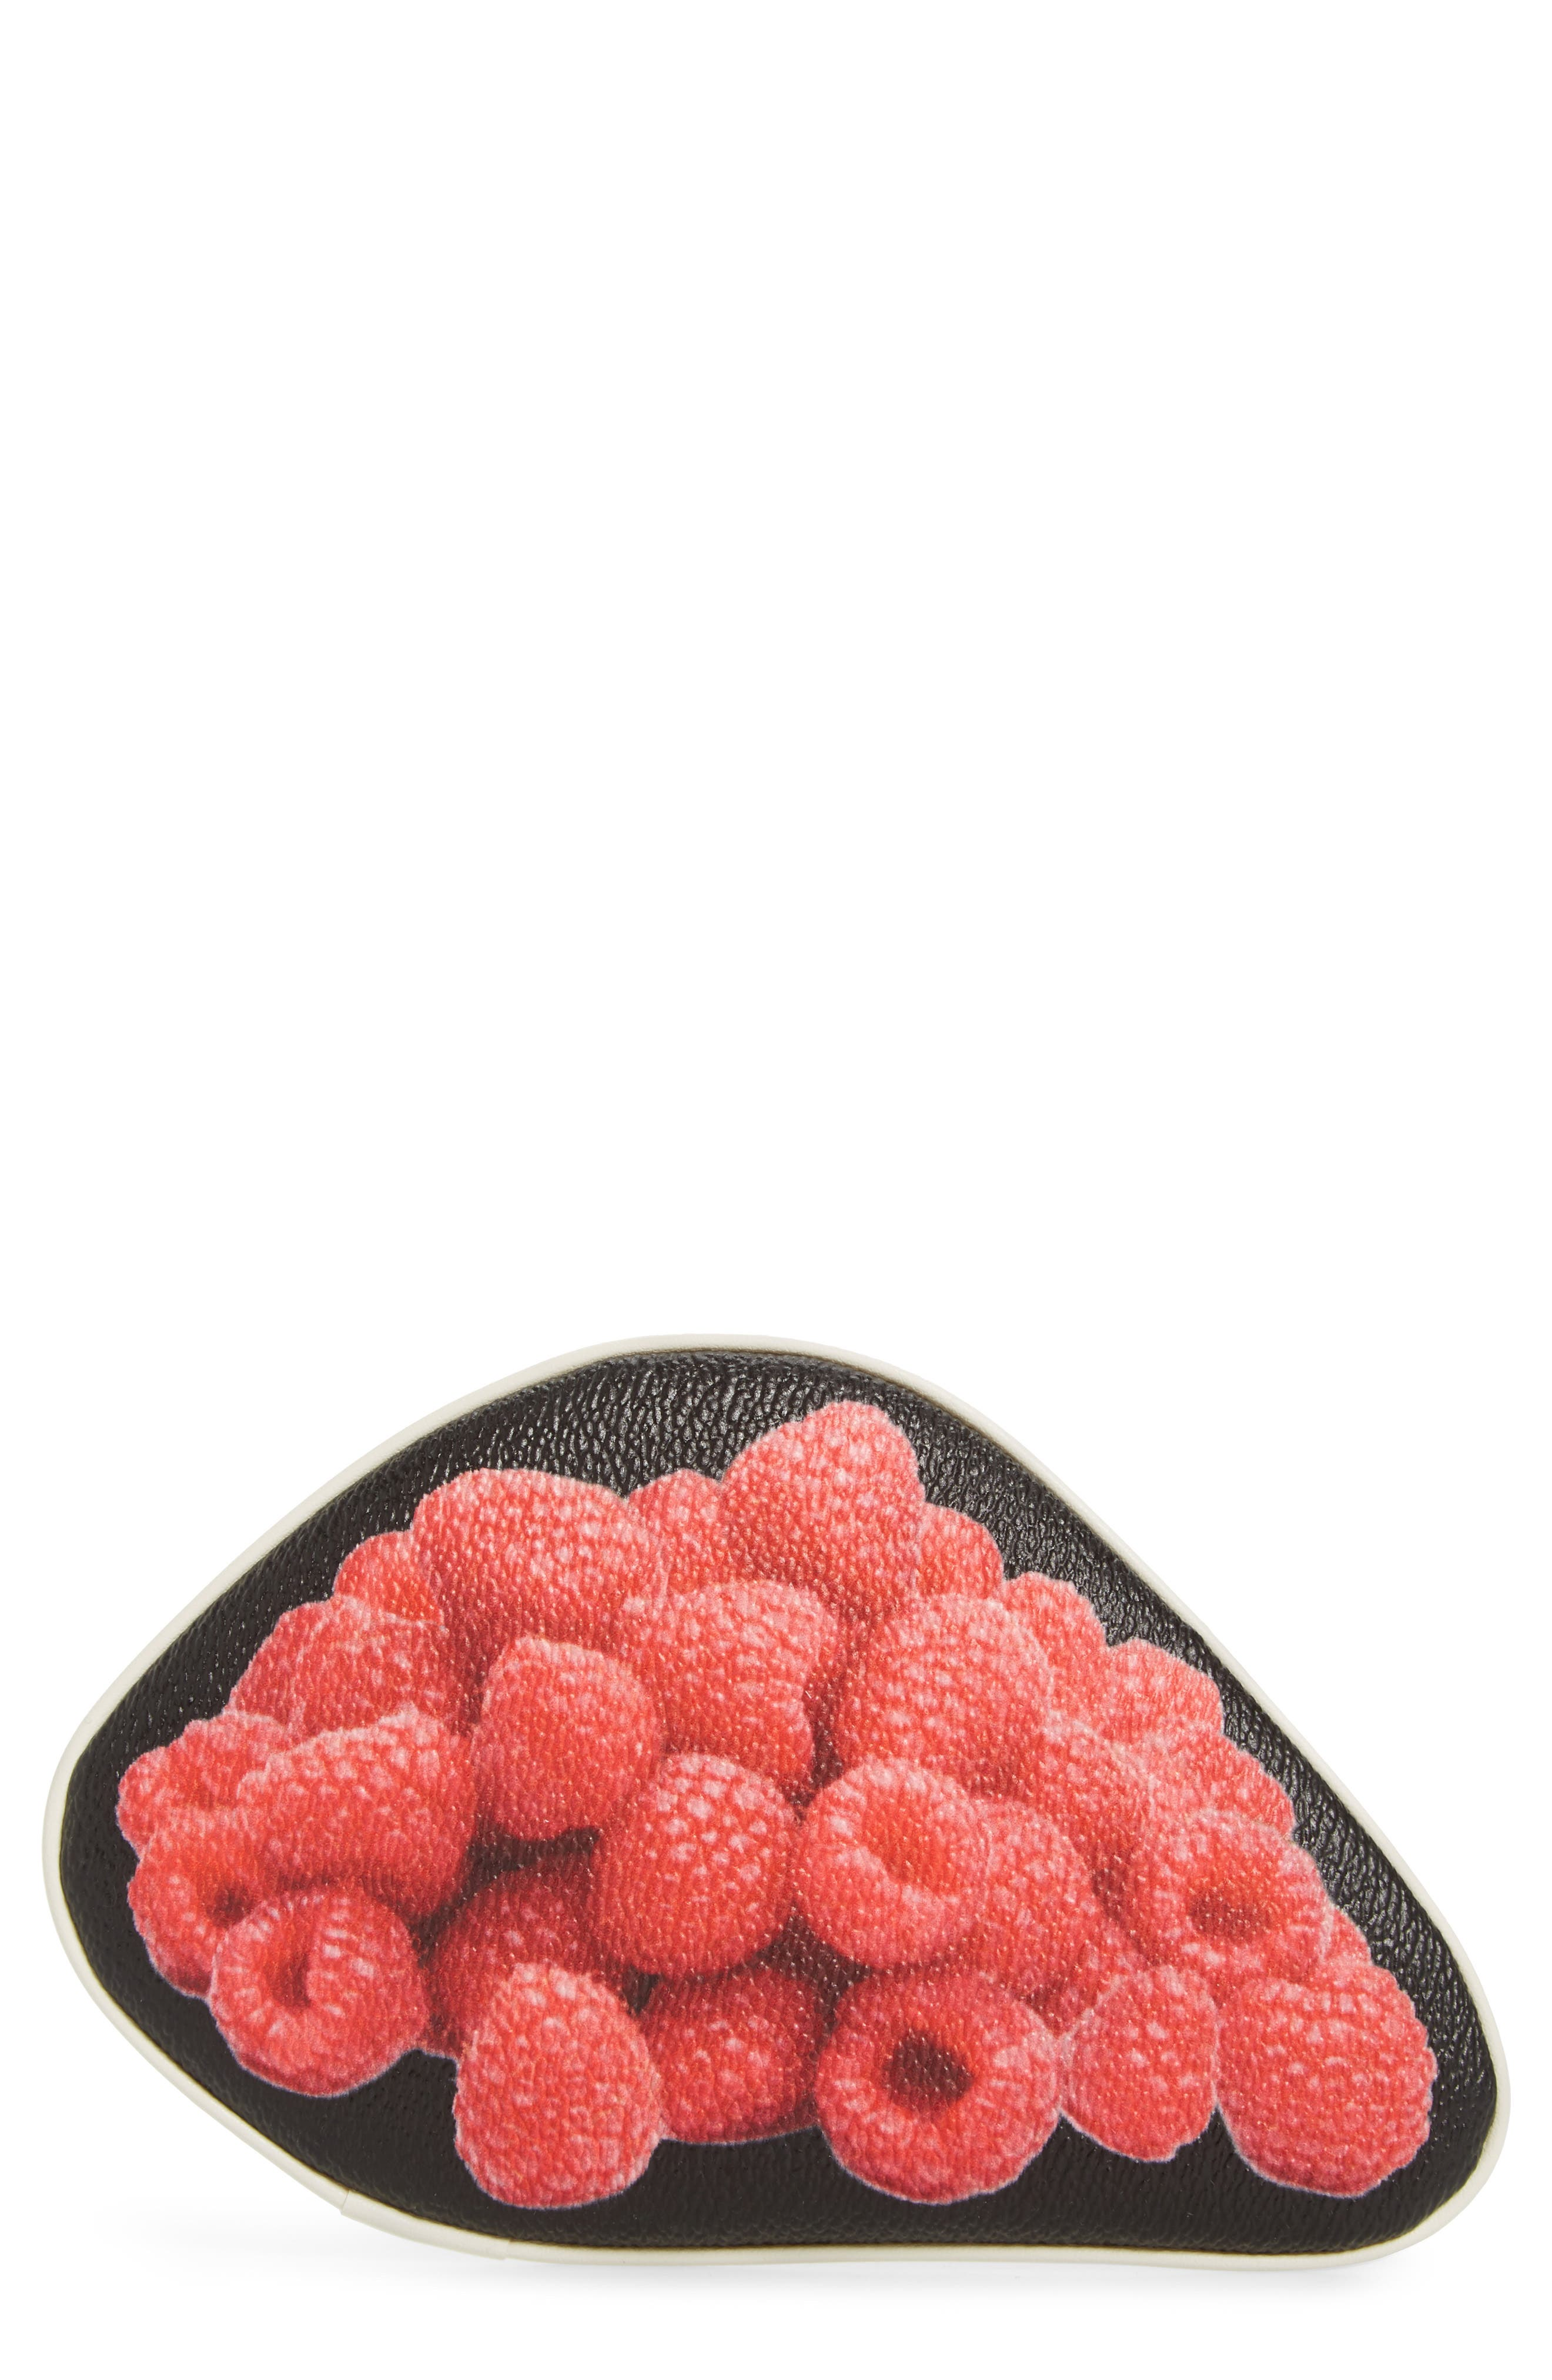 Alternate Image 1 Selected - Undercover Raspberries Coin Purse